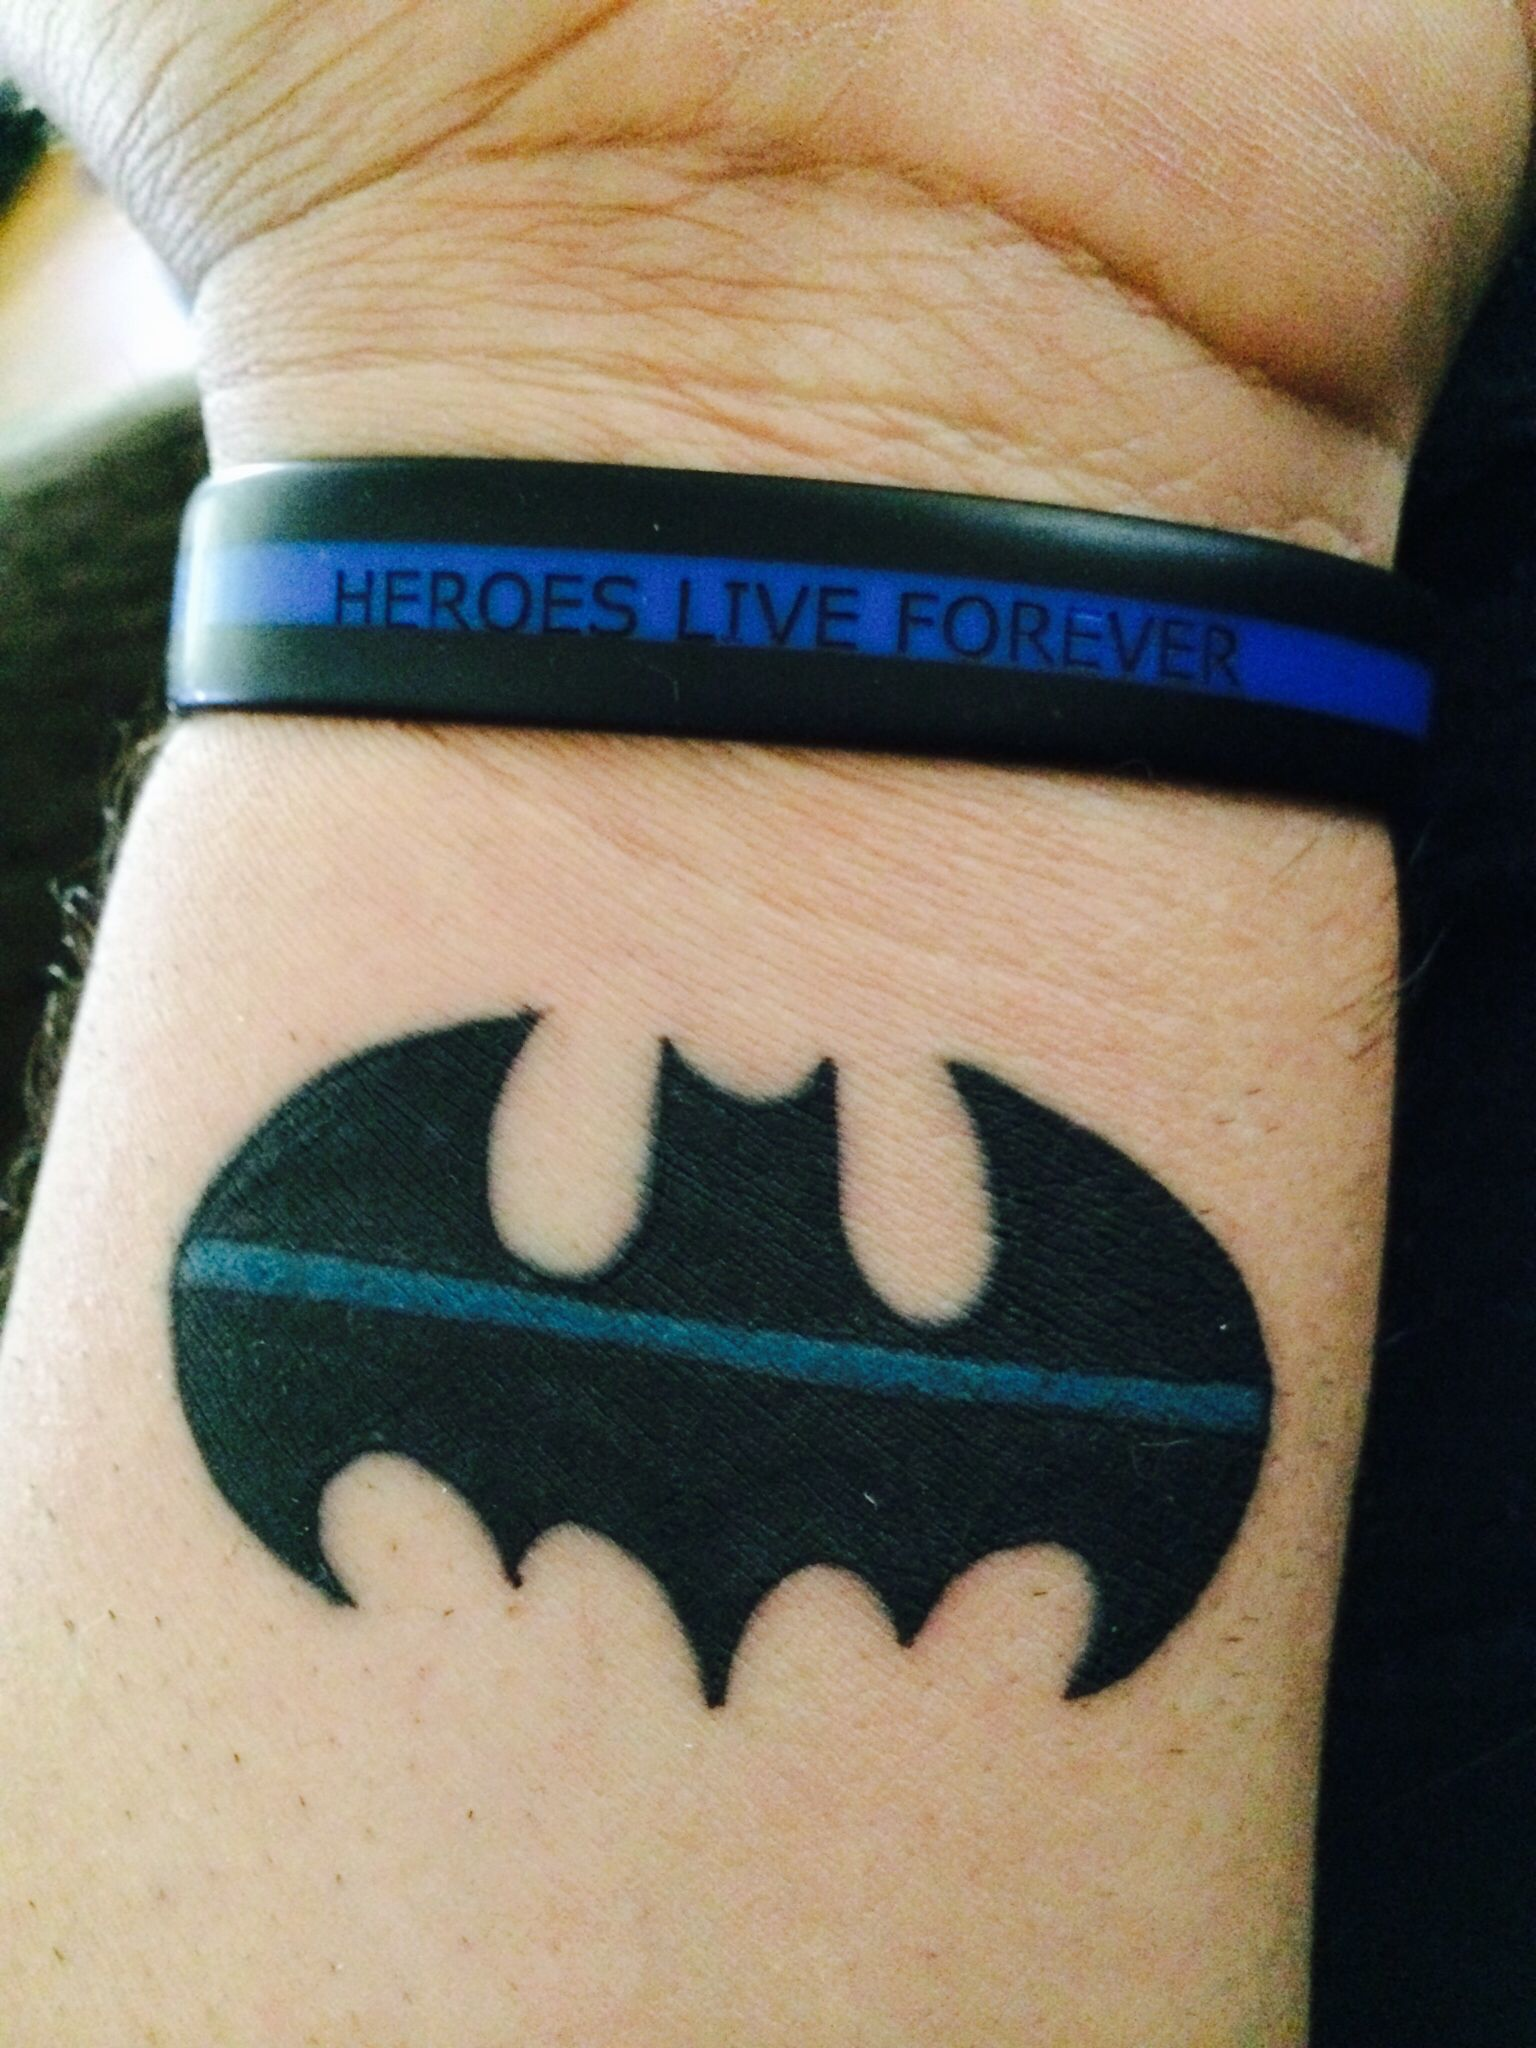 bcdc91acf My first tattoo #batman #wristtattoo #thinblueline #20yeartour | Me ...